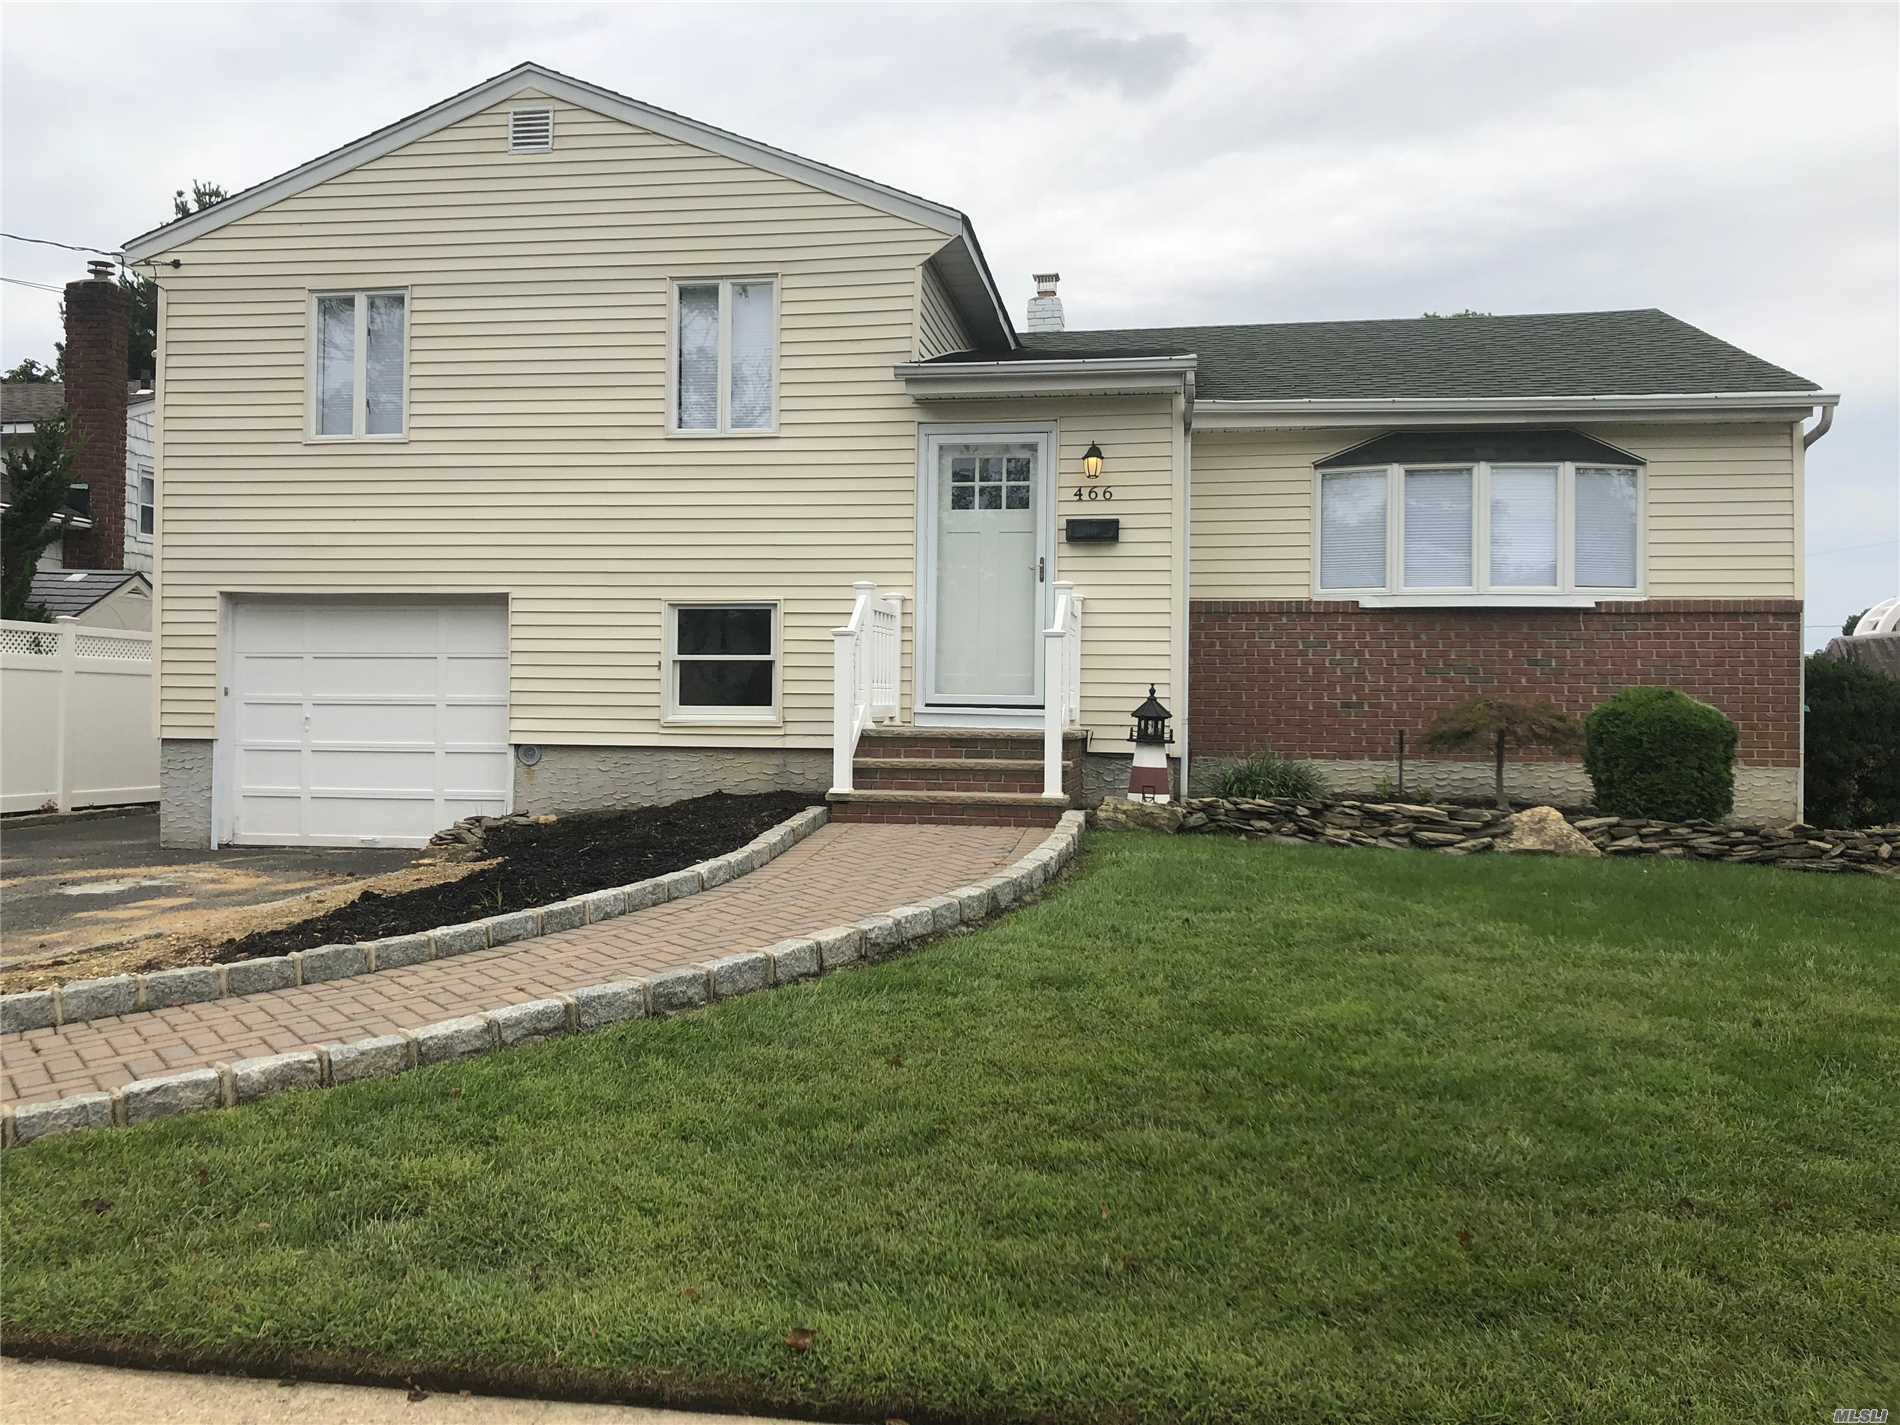 Remarks:Newly Renovated Spectacular Split In Massapequa Park. Possibility Of A 4th Bedroom Or Second Master Located On Ground Level. Finished Basement. Beautiful Hardwood Floors, Radiant Heat, Central Ac, Large Yard Perfect For Entertaining.All Binders Off.